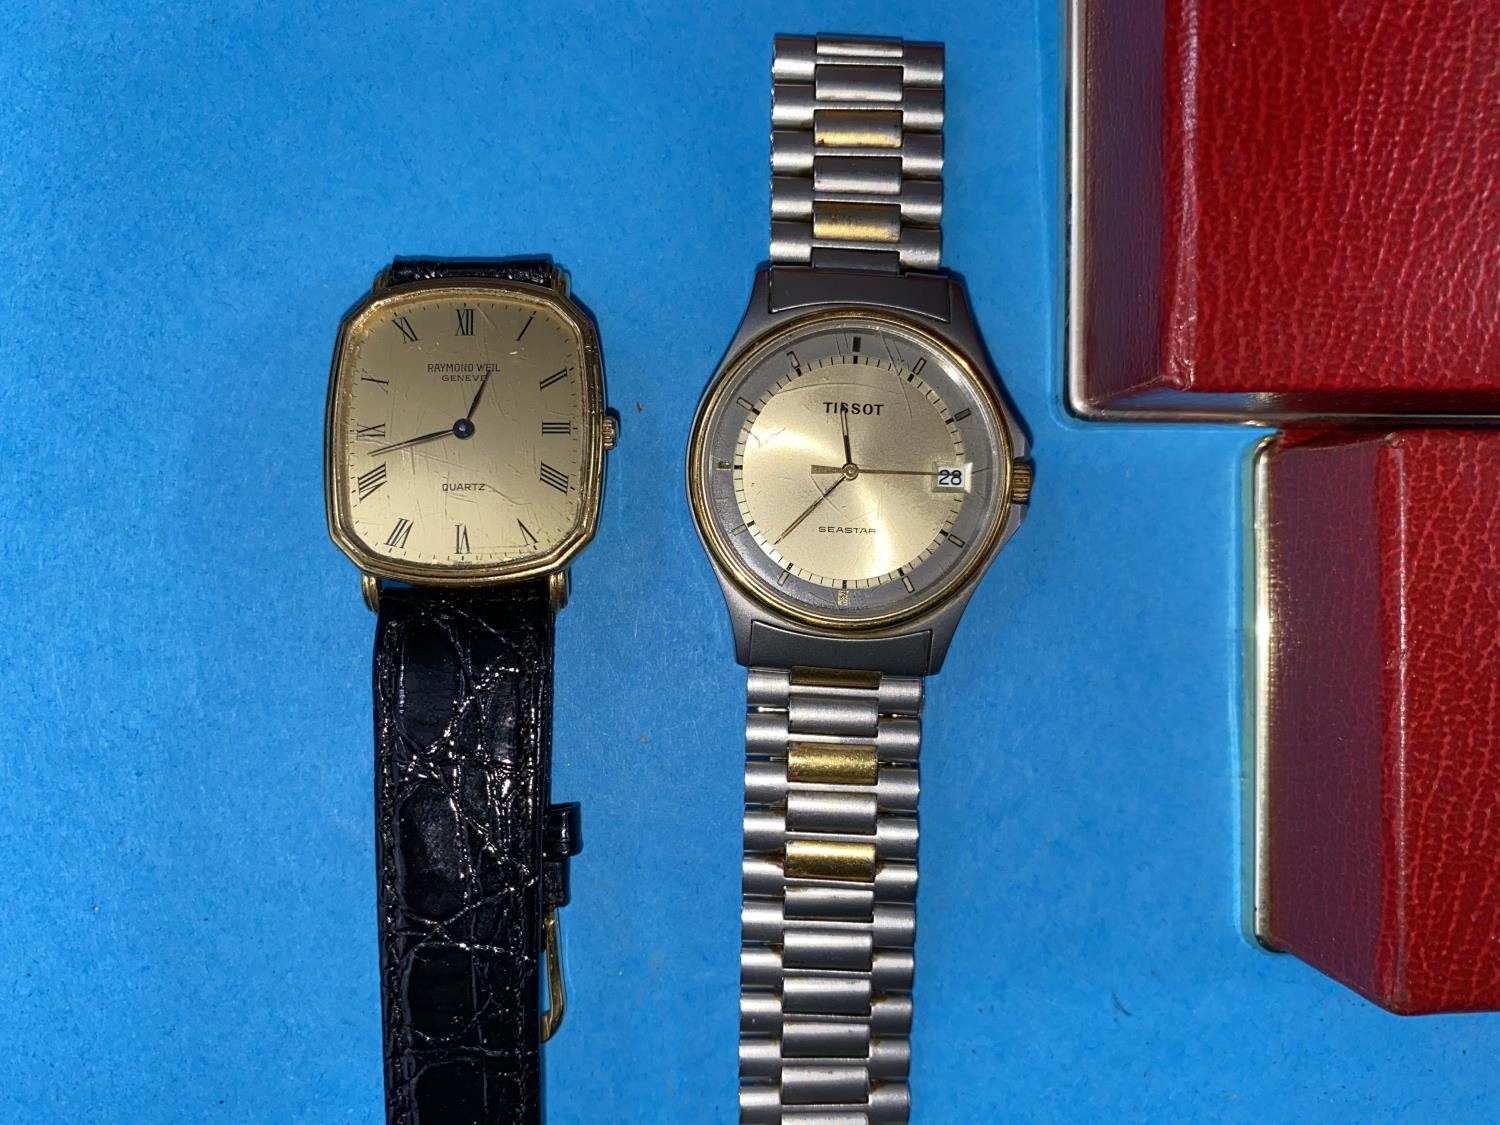 3 Omega watch cases, Tissot Seastar and a Raymond Weil watch - Image 2 of 2